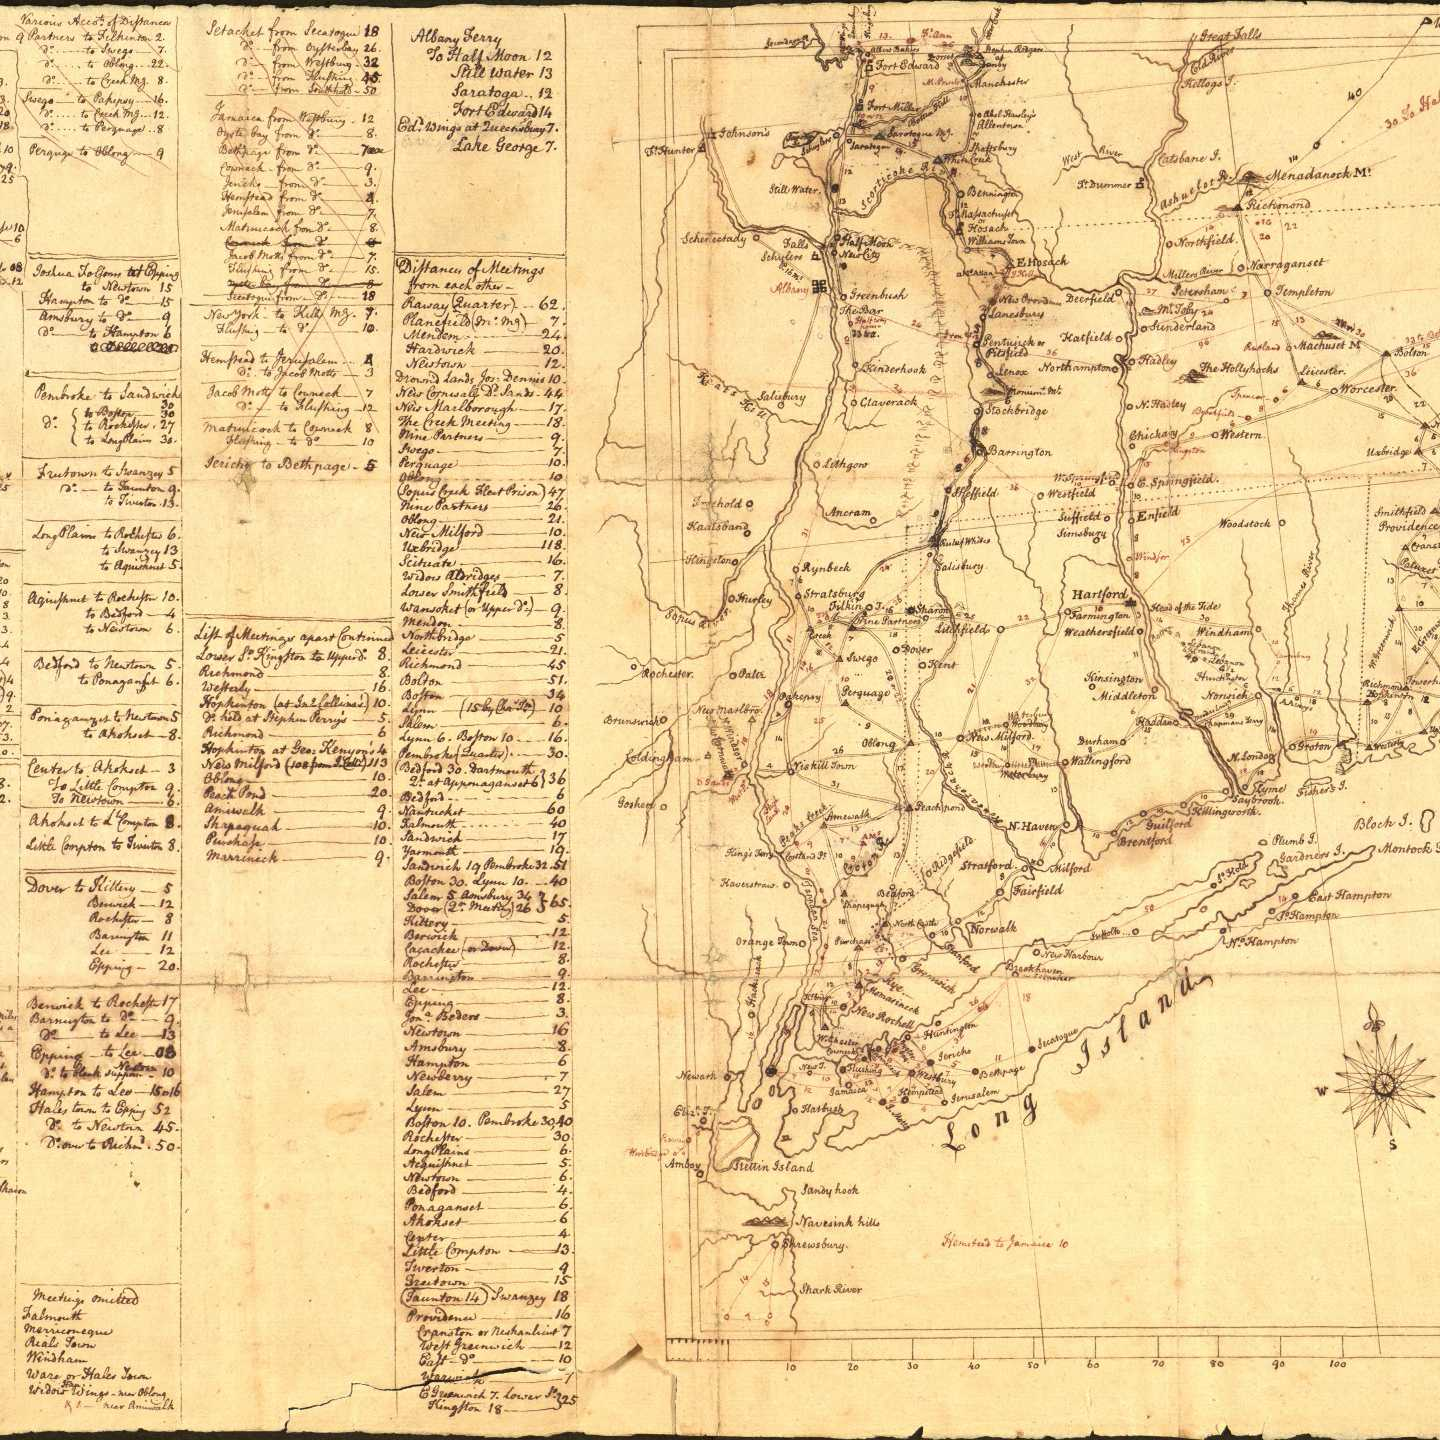 Map_of_Meetings_from_New_York_to_Boston_A